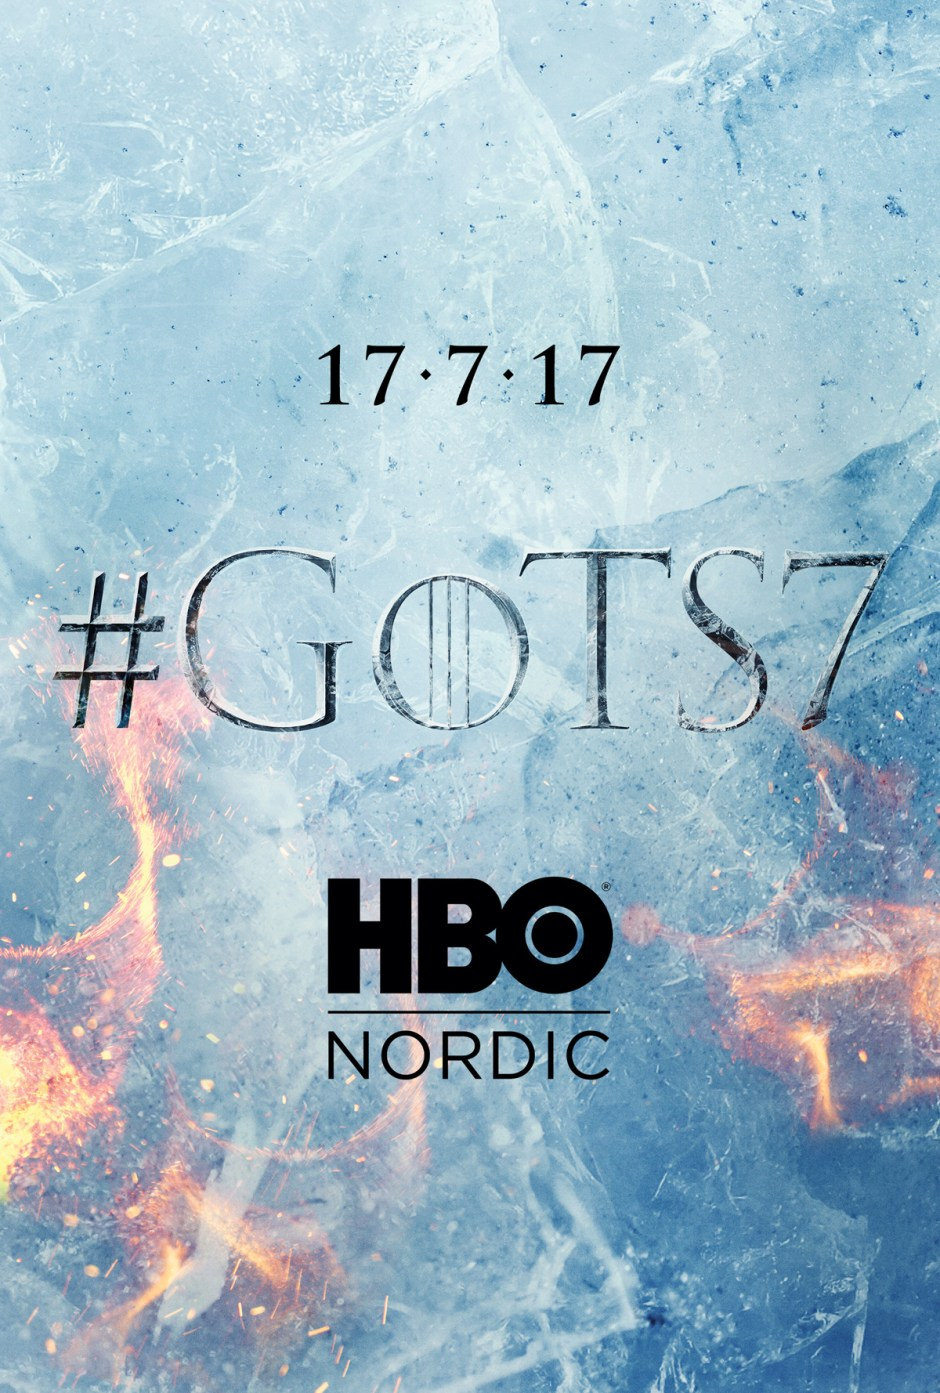 GOTs7-HBO-NORDIC-with-date-low (1).jpg